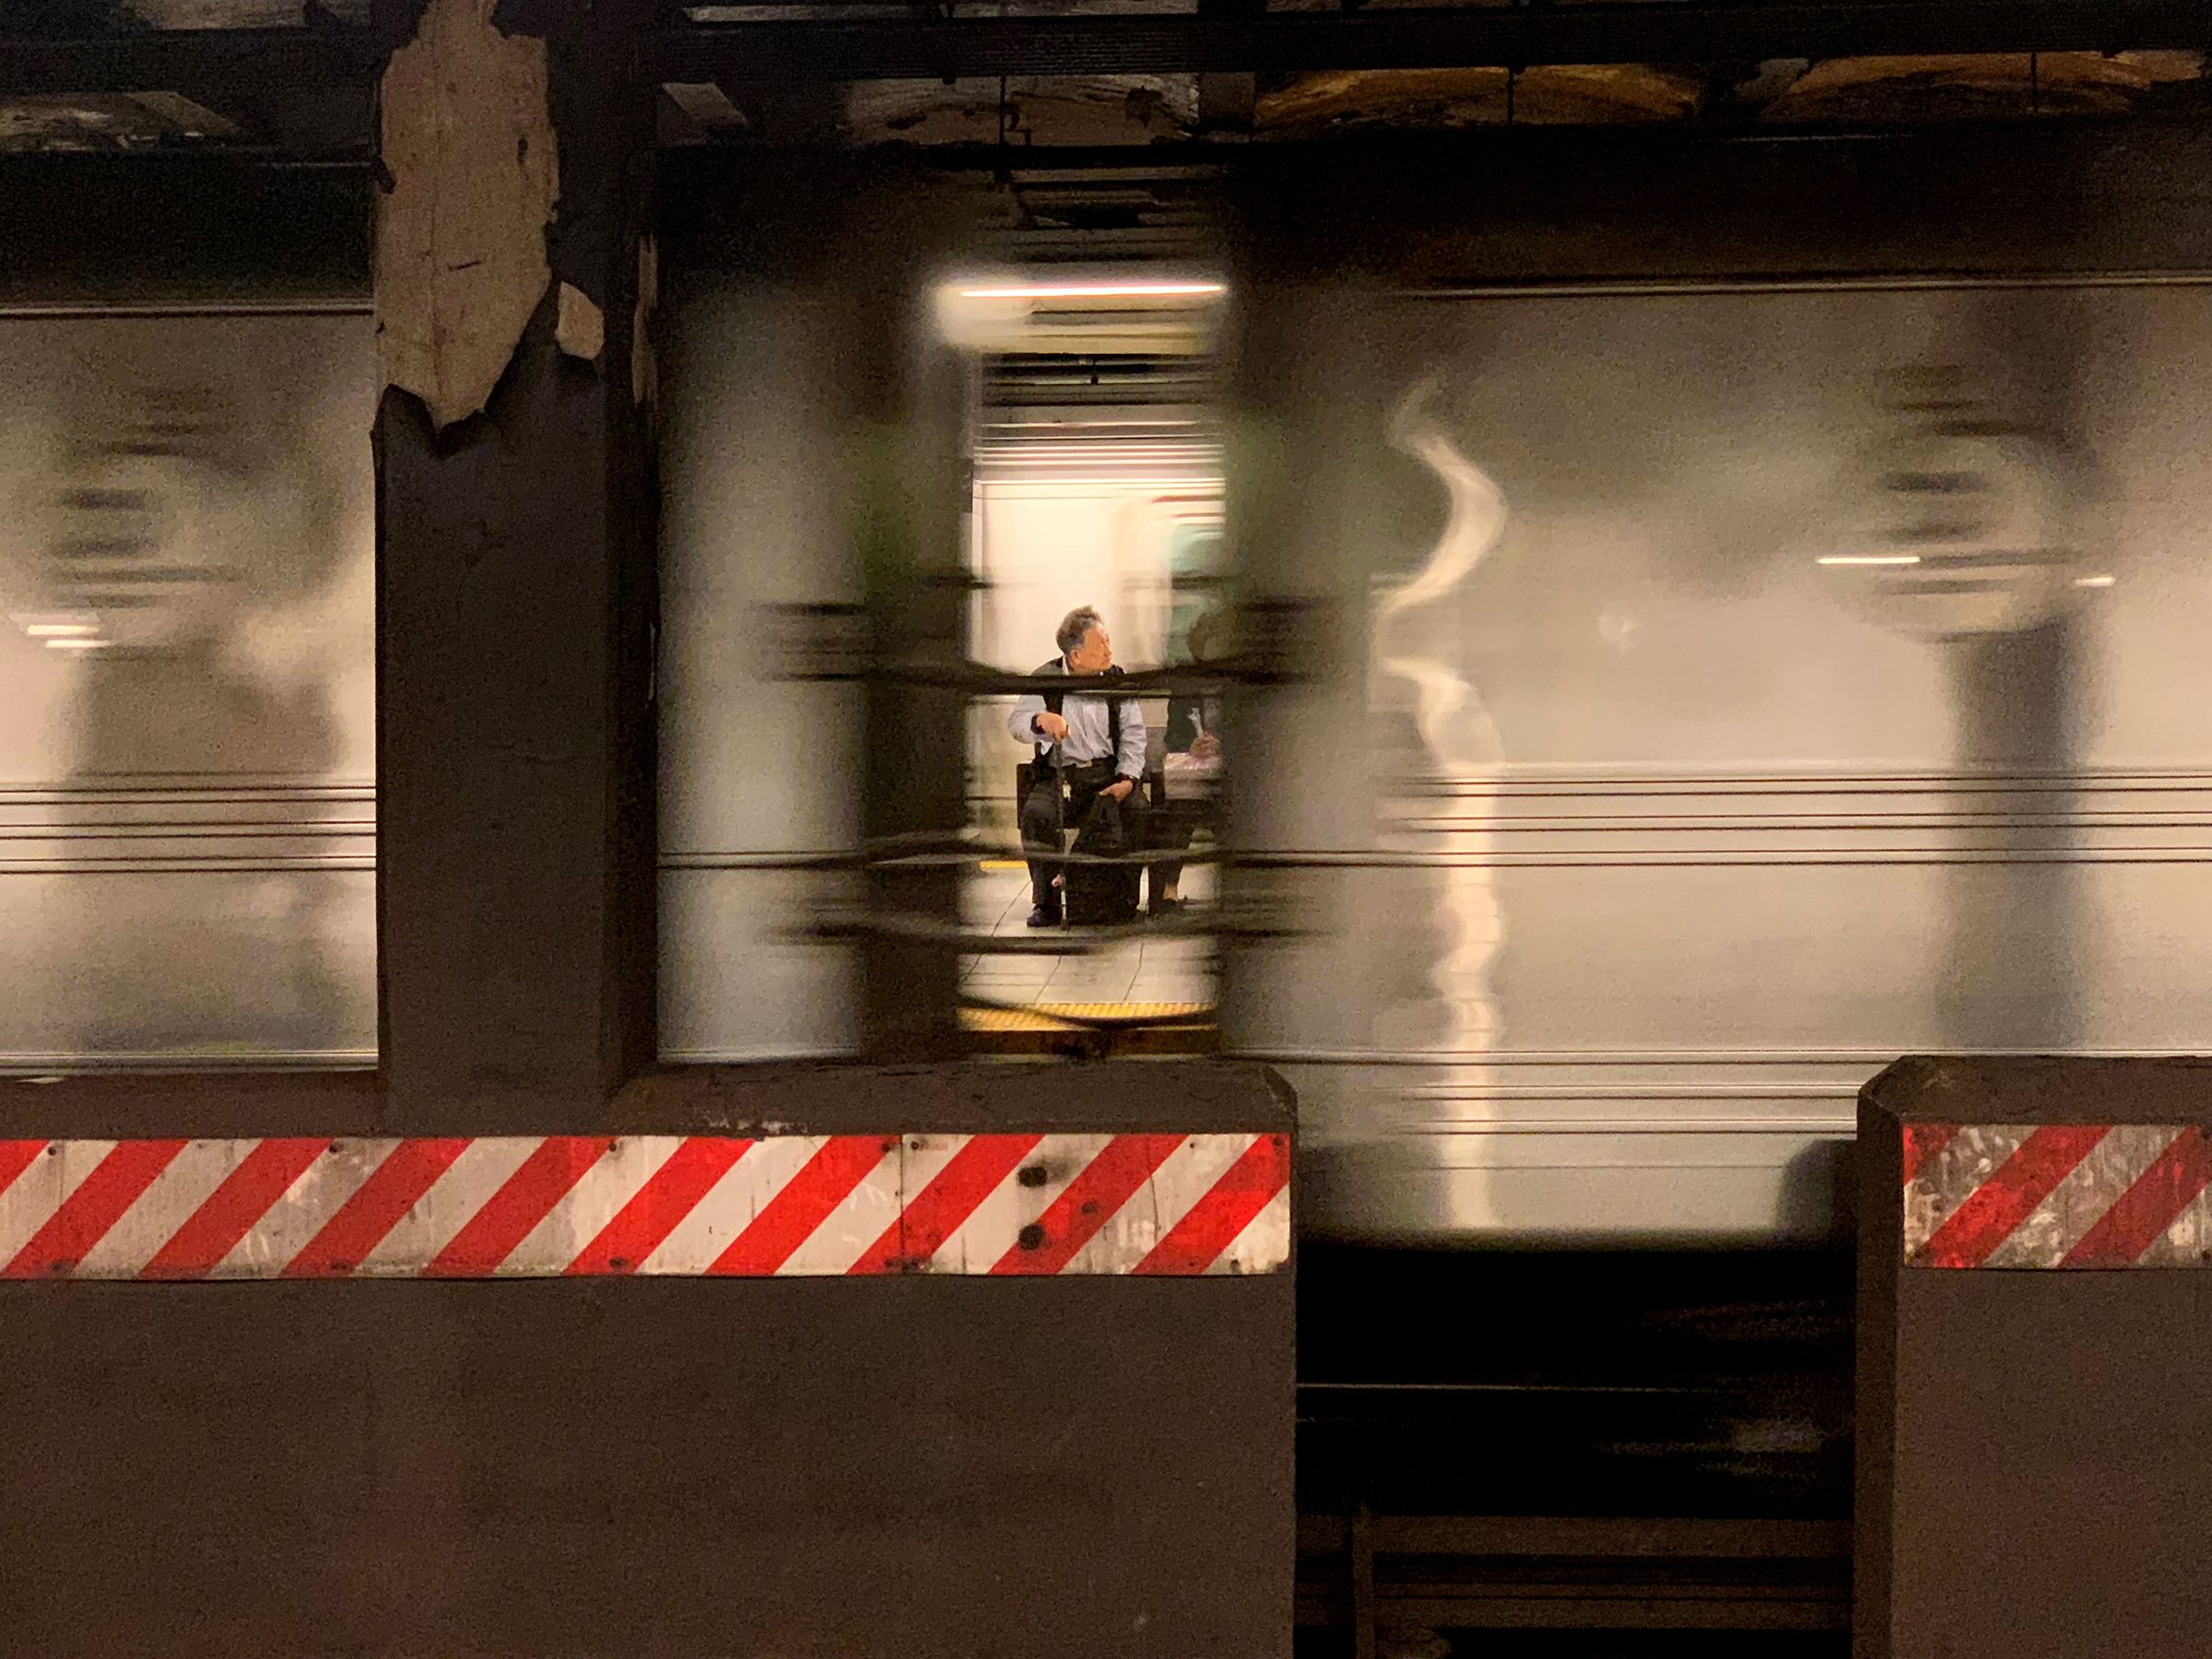 009__NYC-Subway_04_10x10in_ColorPrint_2018.jpg